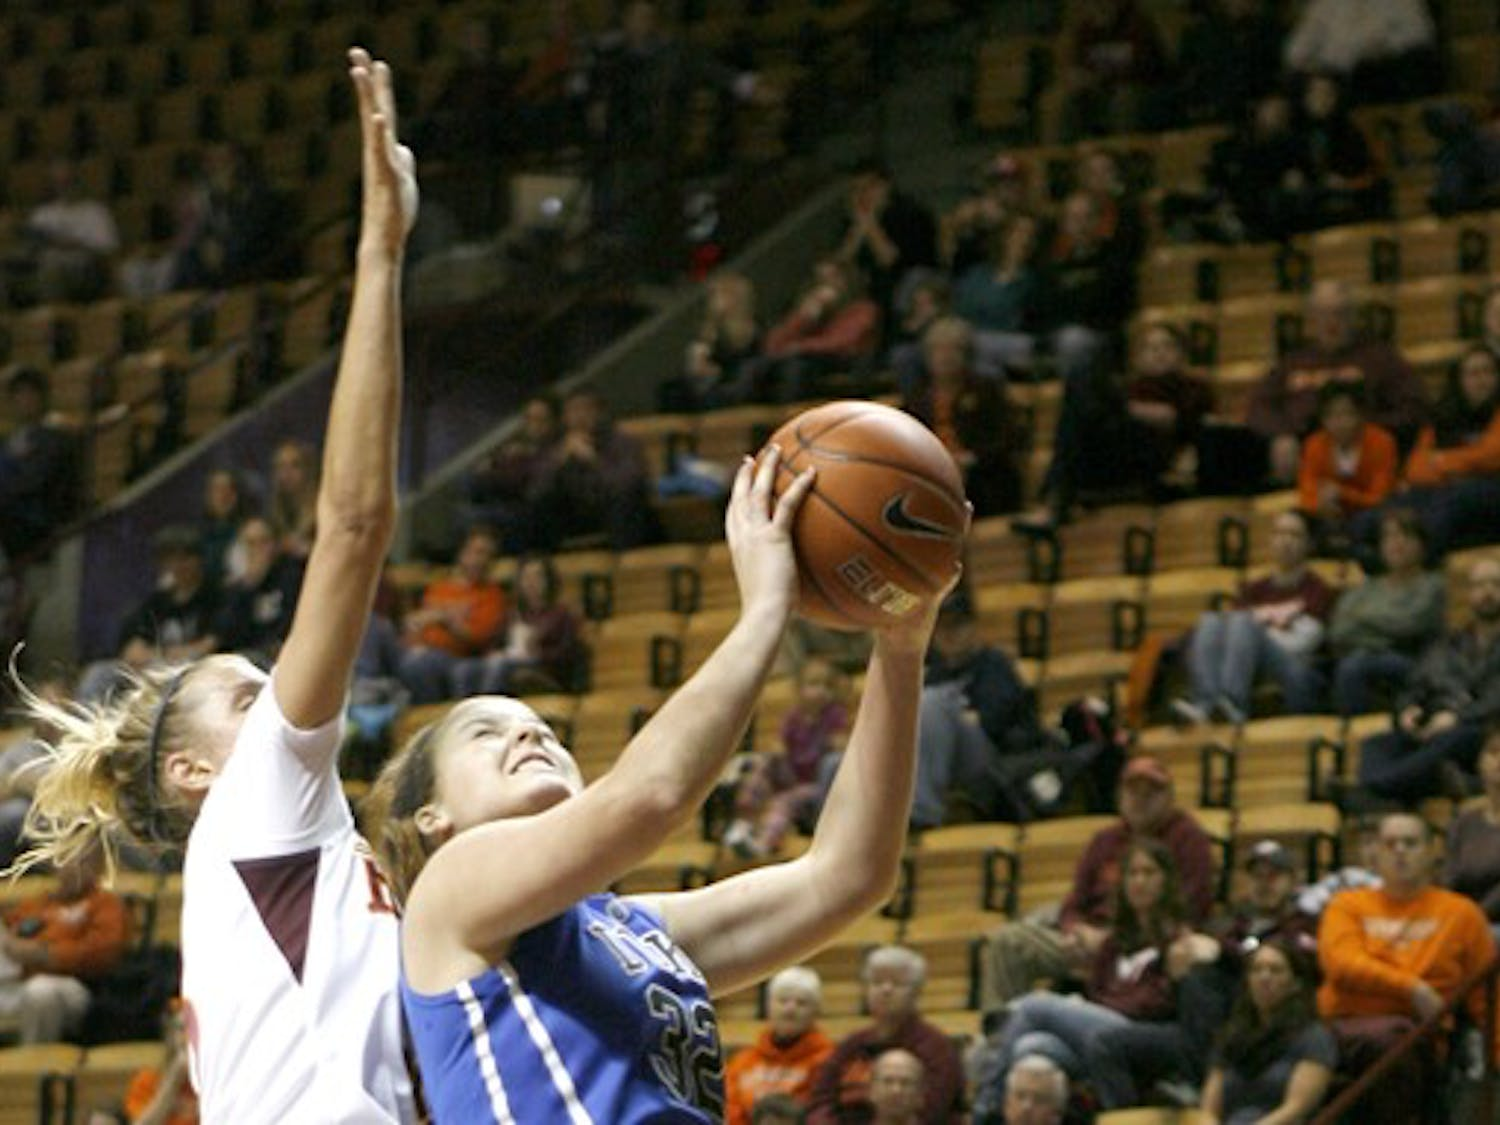 Kathleen Scheer and the Blue Devils will look to avoid overlooking Georgia Tech with major matchups with Maryland and Connecticut looming.